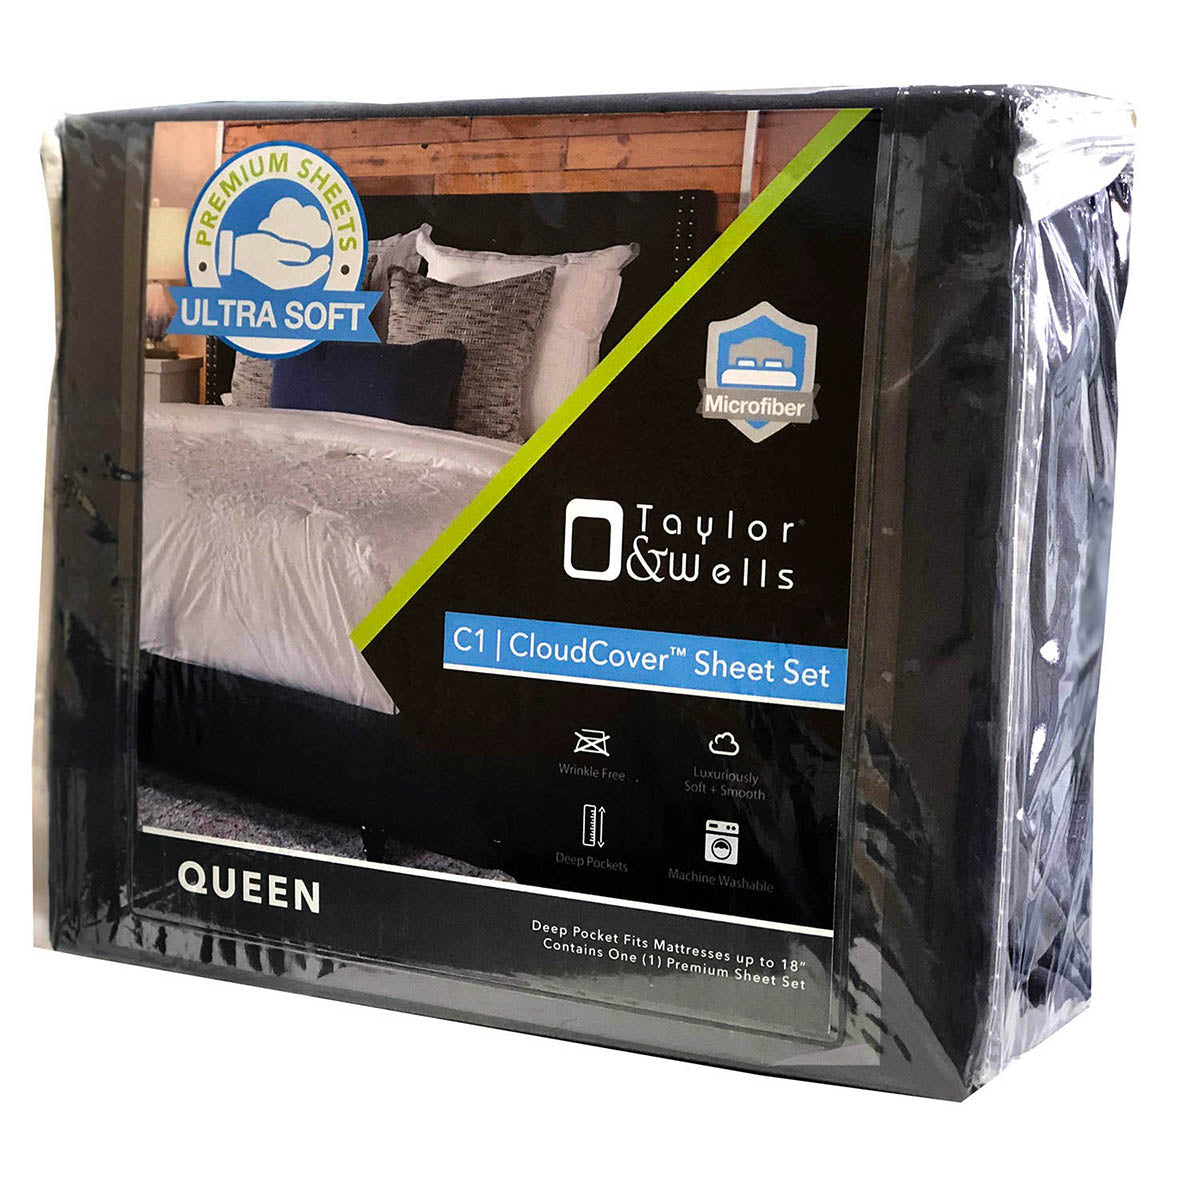 Free Premium Sheet Set with Purchase